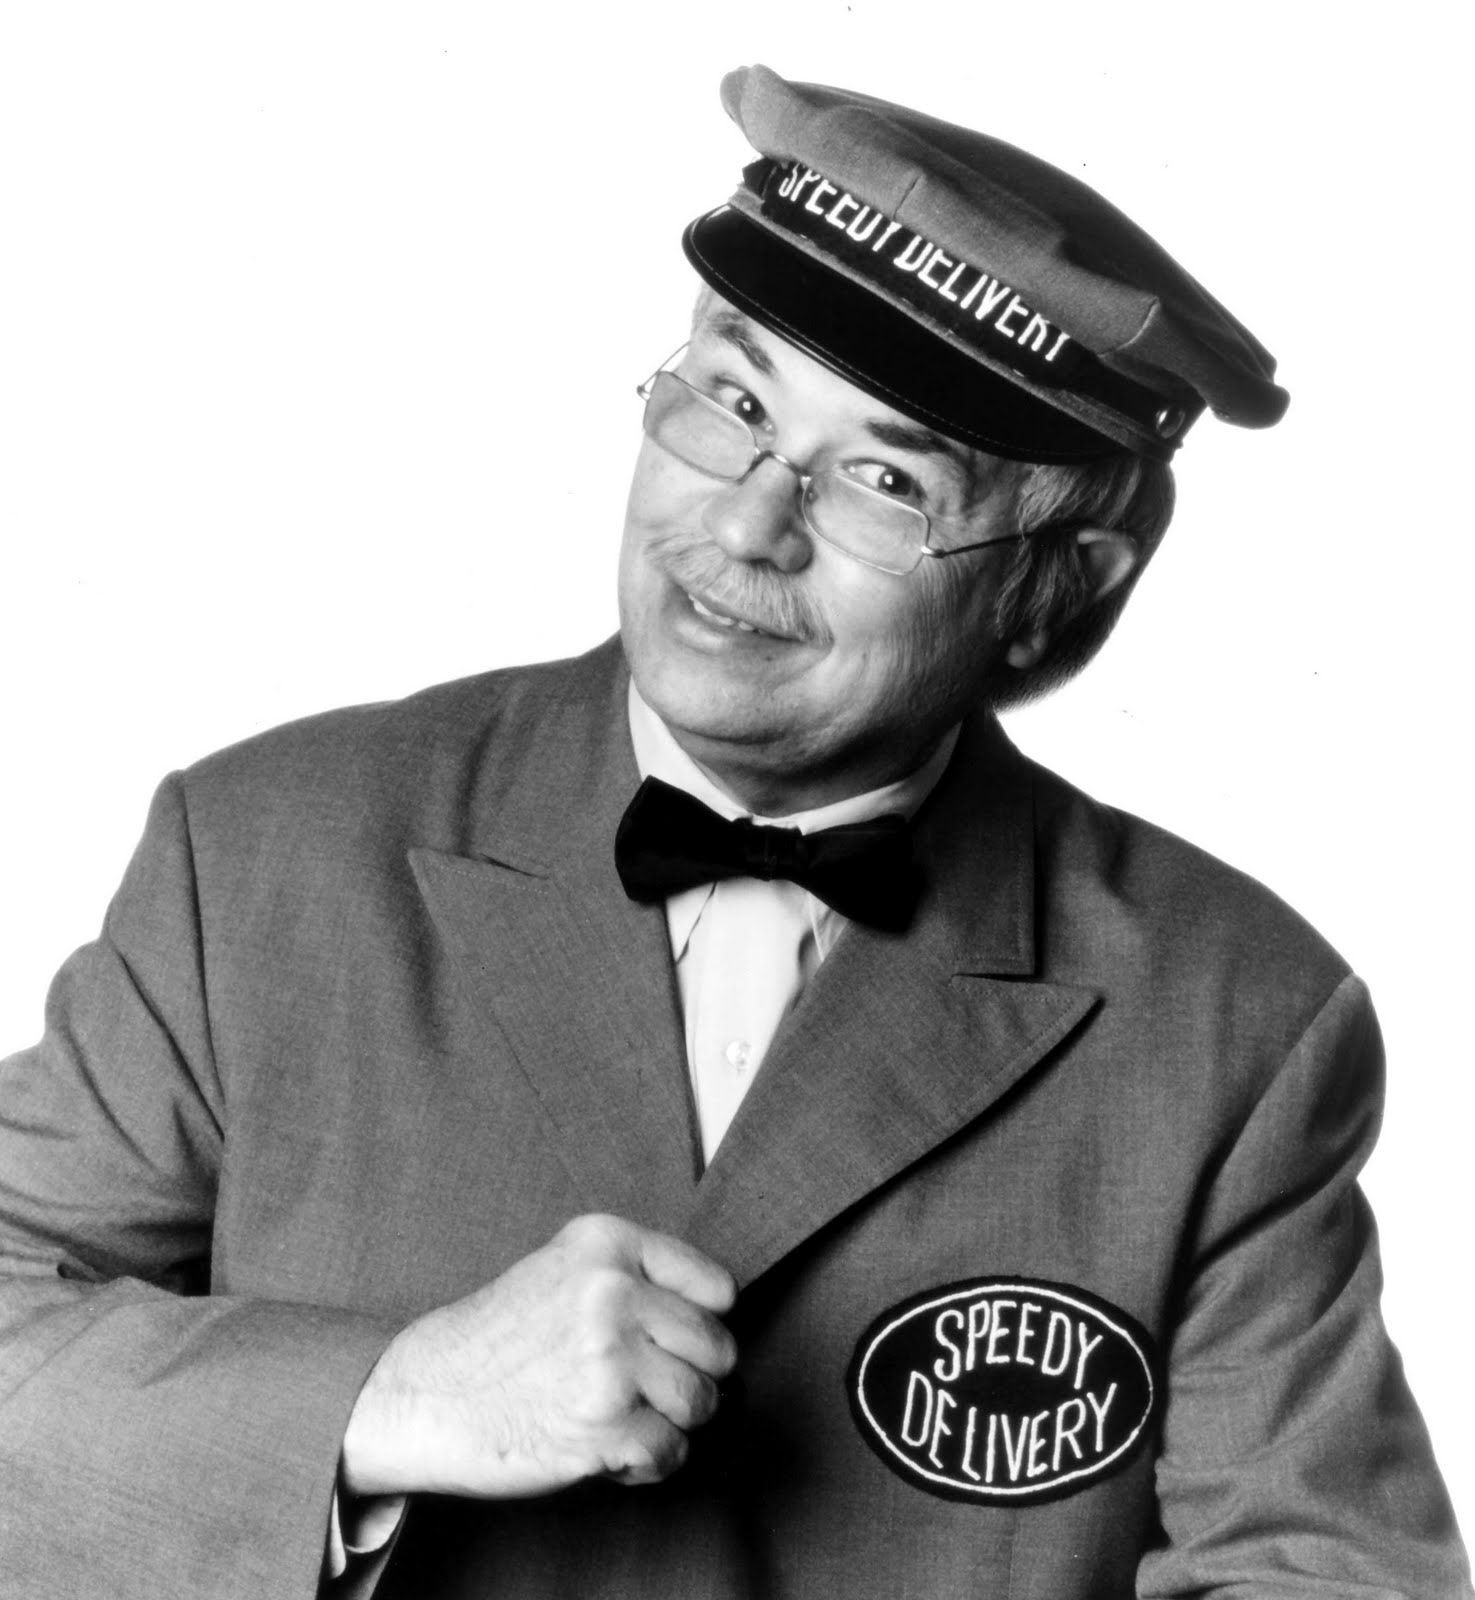 Mr Mcfeely From Mr Rogers Neighborhood Always On The Go Like My Mom Haha Speedy Delivery Mus Mister Rogers Neighborhood Mr Rogers The Neighbourhood